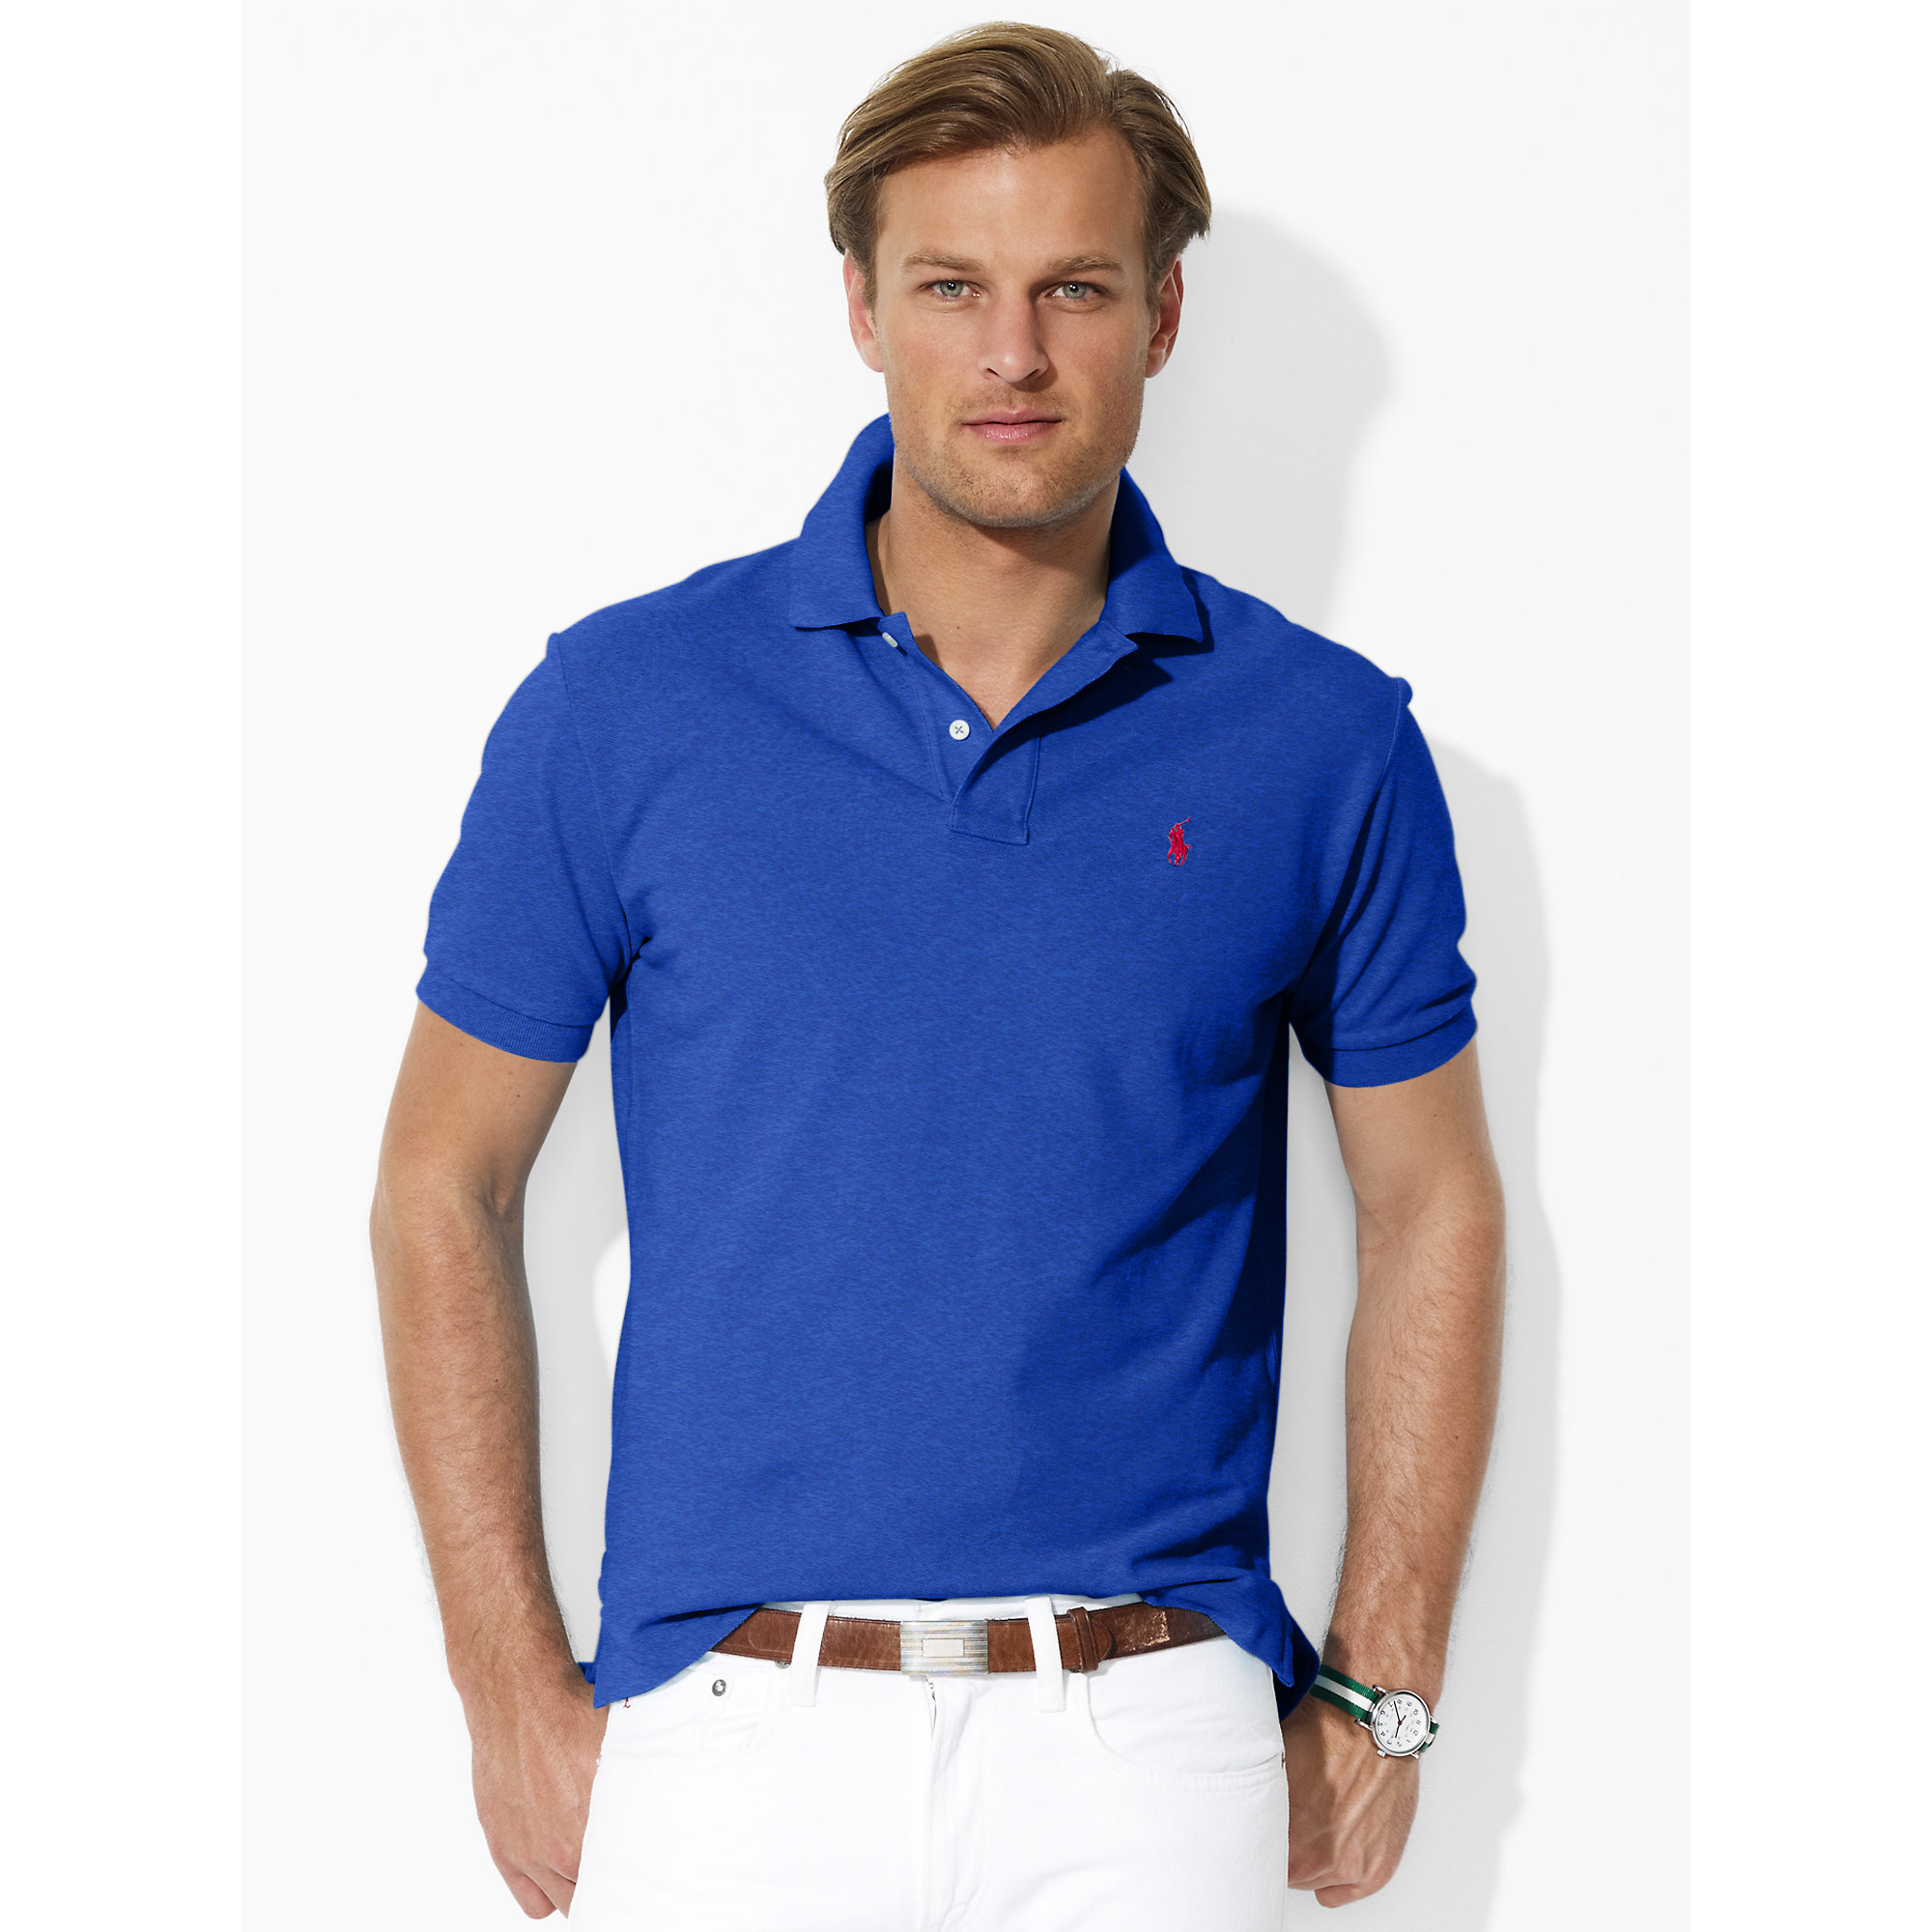 abf9a573 ... official store lyst polo ralph lauren classic fit mesh polo in blue for  men c5a07 470a3